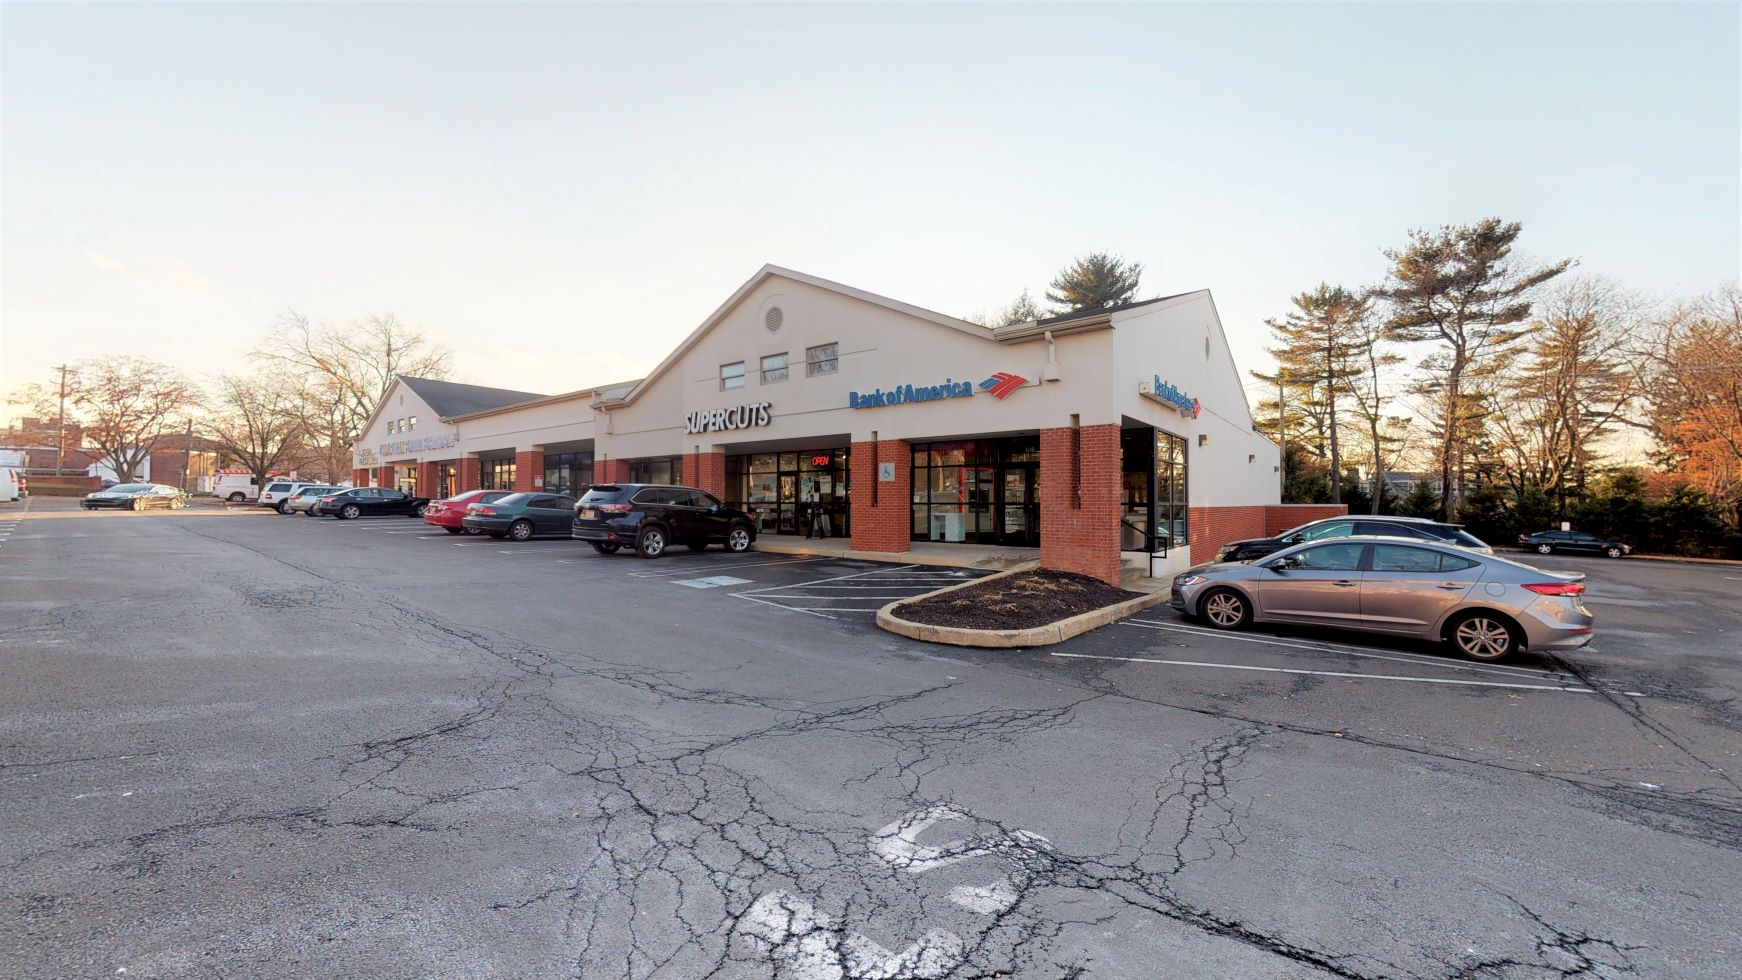 Bank of America financial center with walk-up ATM   616 Old York Rd, Jenkintown, PA 19046